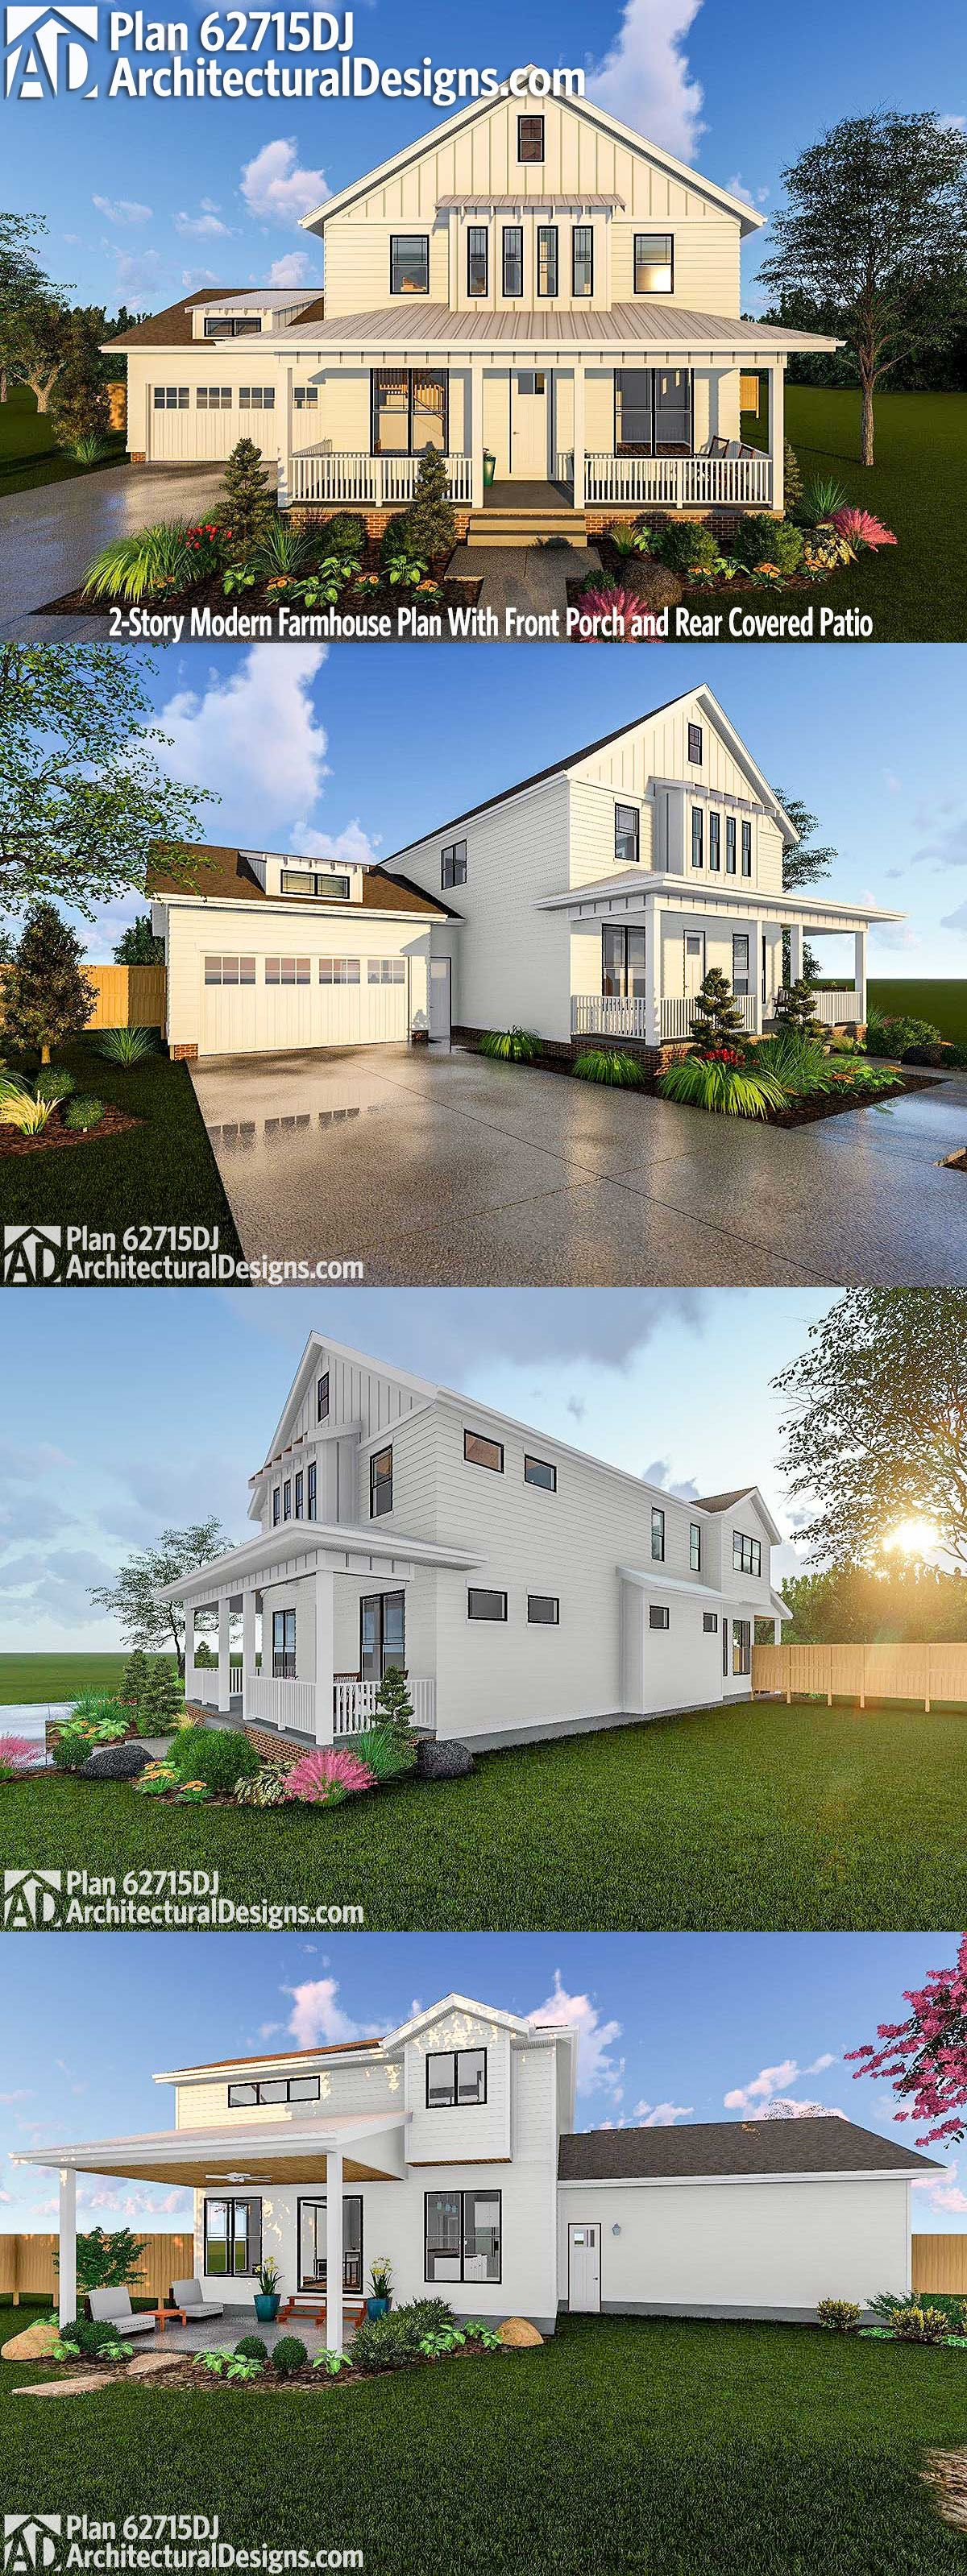 Plan 14661RK: Modern Farmhouse With Vaulted Master Suite | Modern  Farmhouse, House And Modern